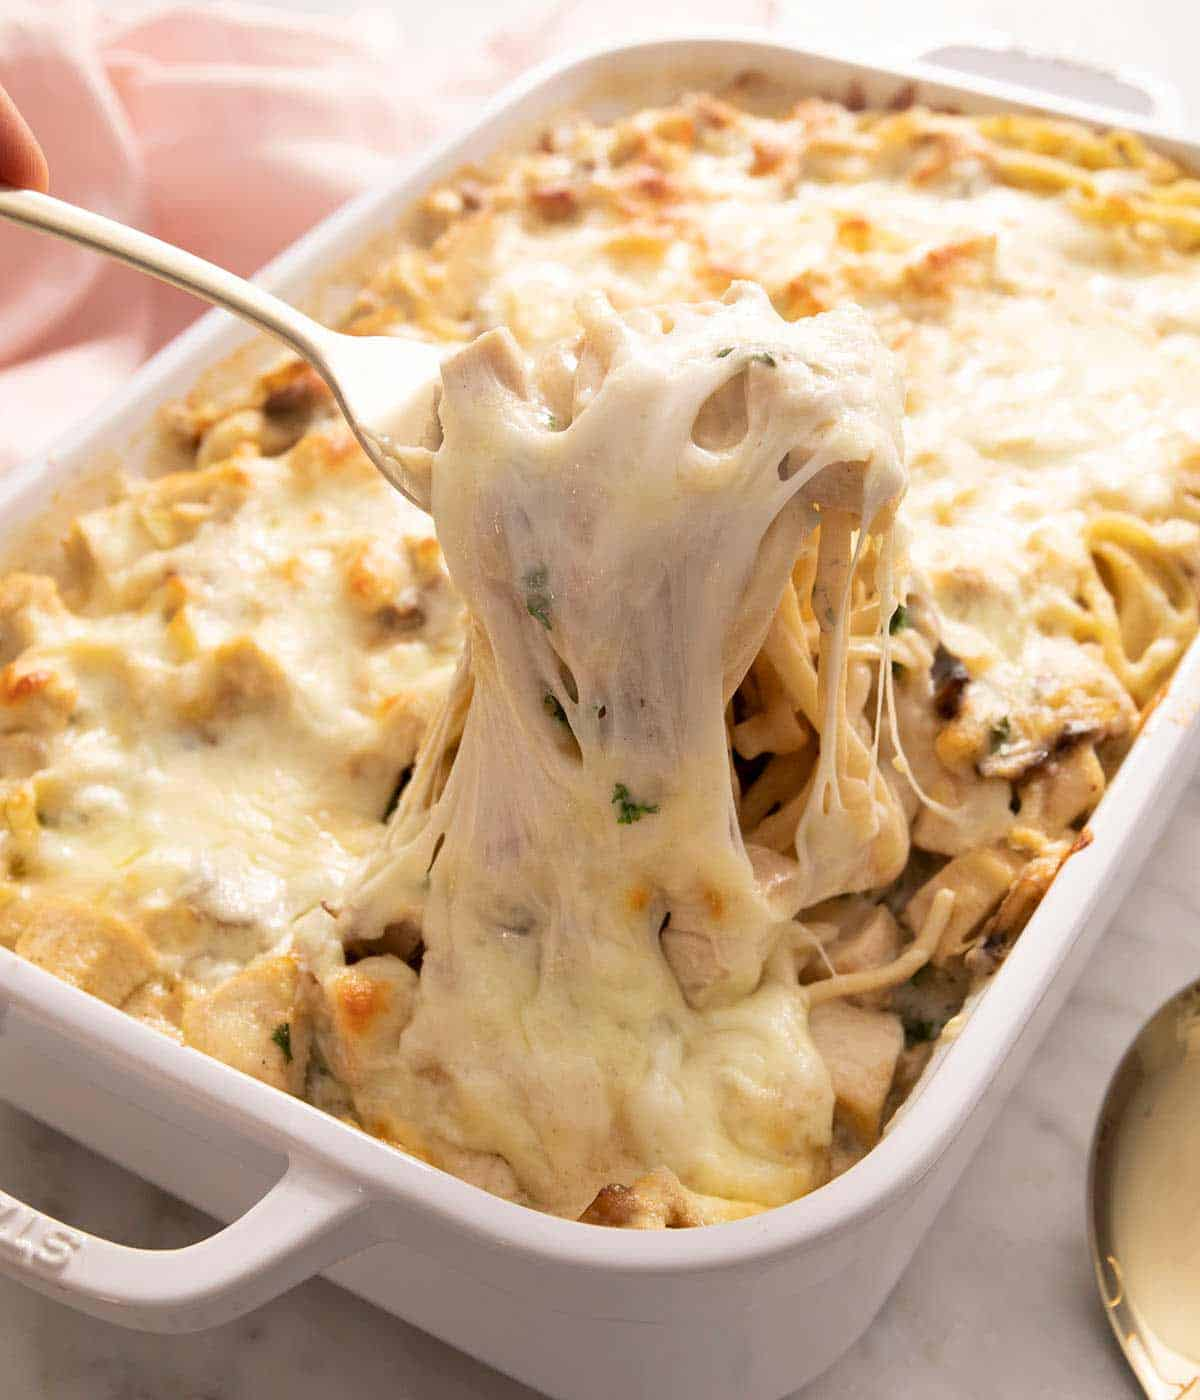 A spoon lifting up some chicken tetrazzini out of a baking dish with lots of melted cheese stretching